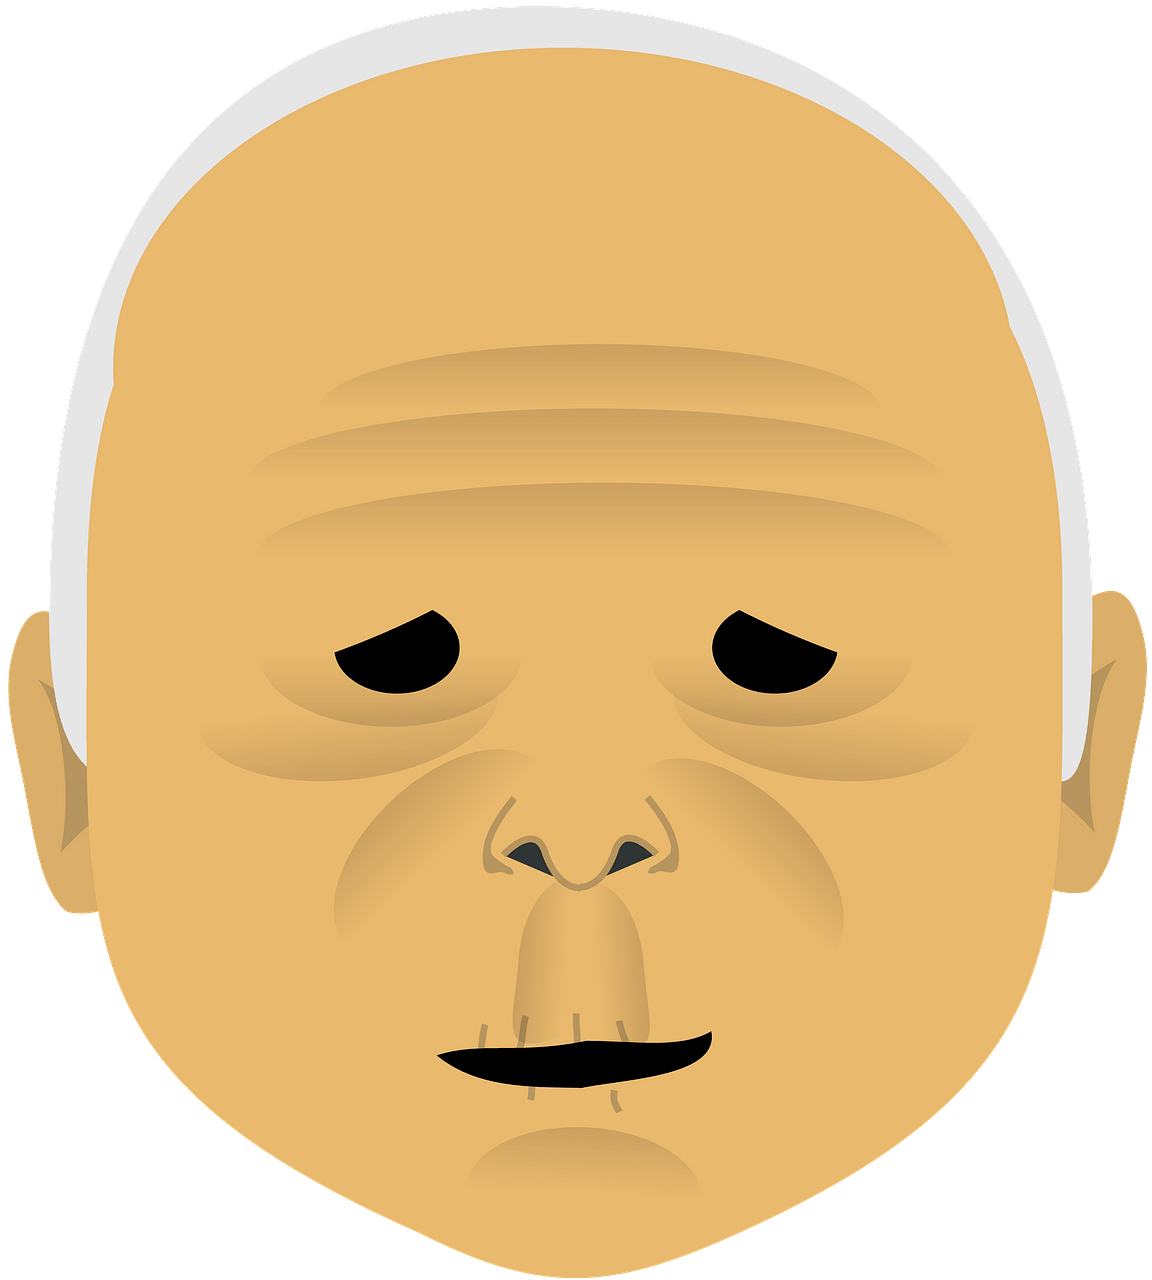 Old man face clipart. Free download..